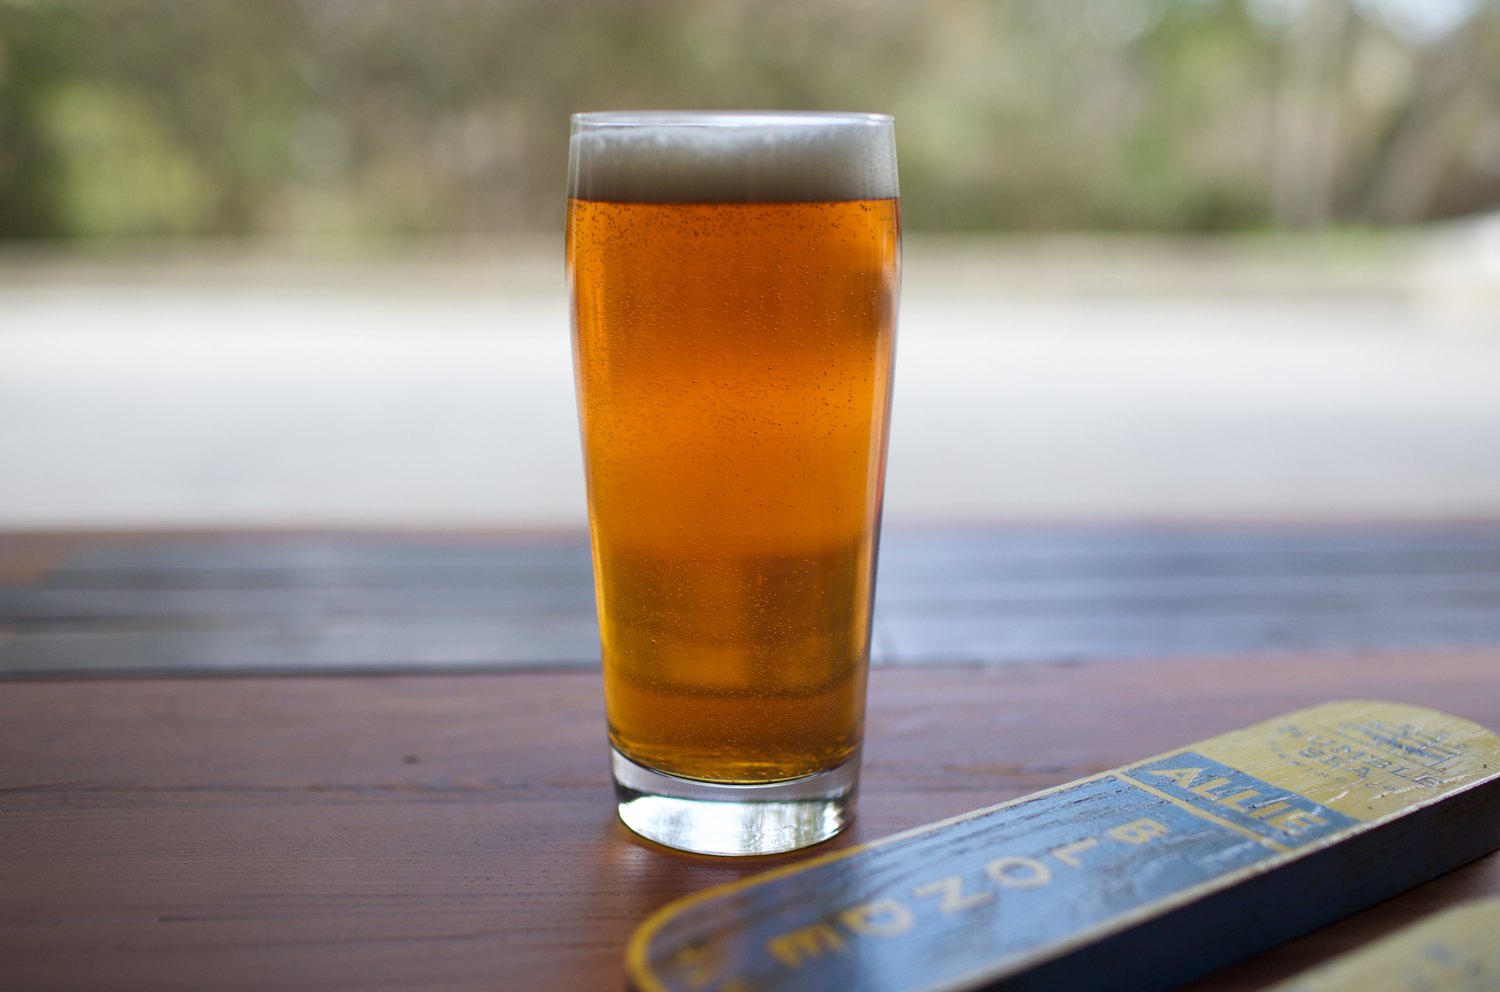 The Allie Blonde Ale will be one of our beers on tap tomorrow to help raise funds for the O'neil Sea Odyssey at the Food Lounge